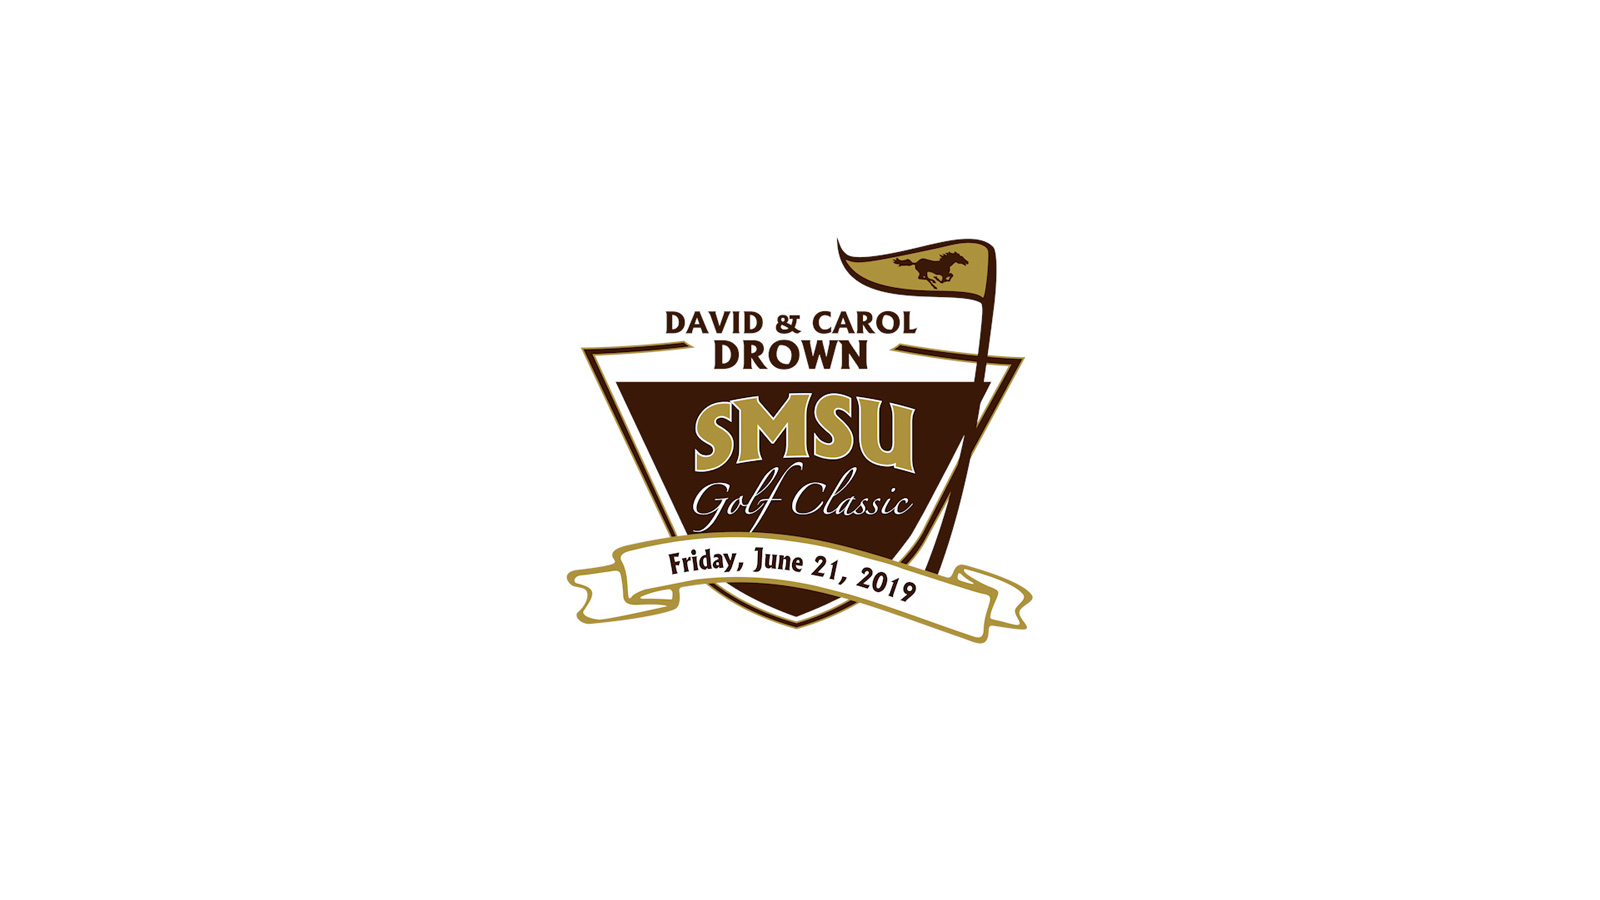 The 34th Annual David & Carol Drown SMSU Golf Classic